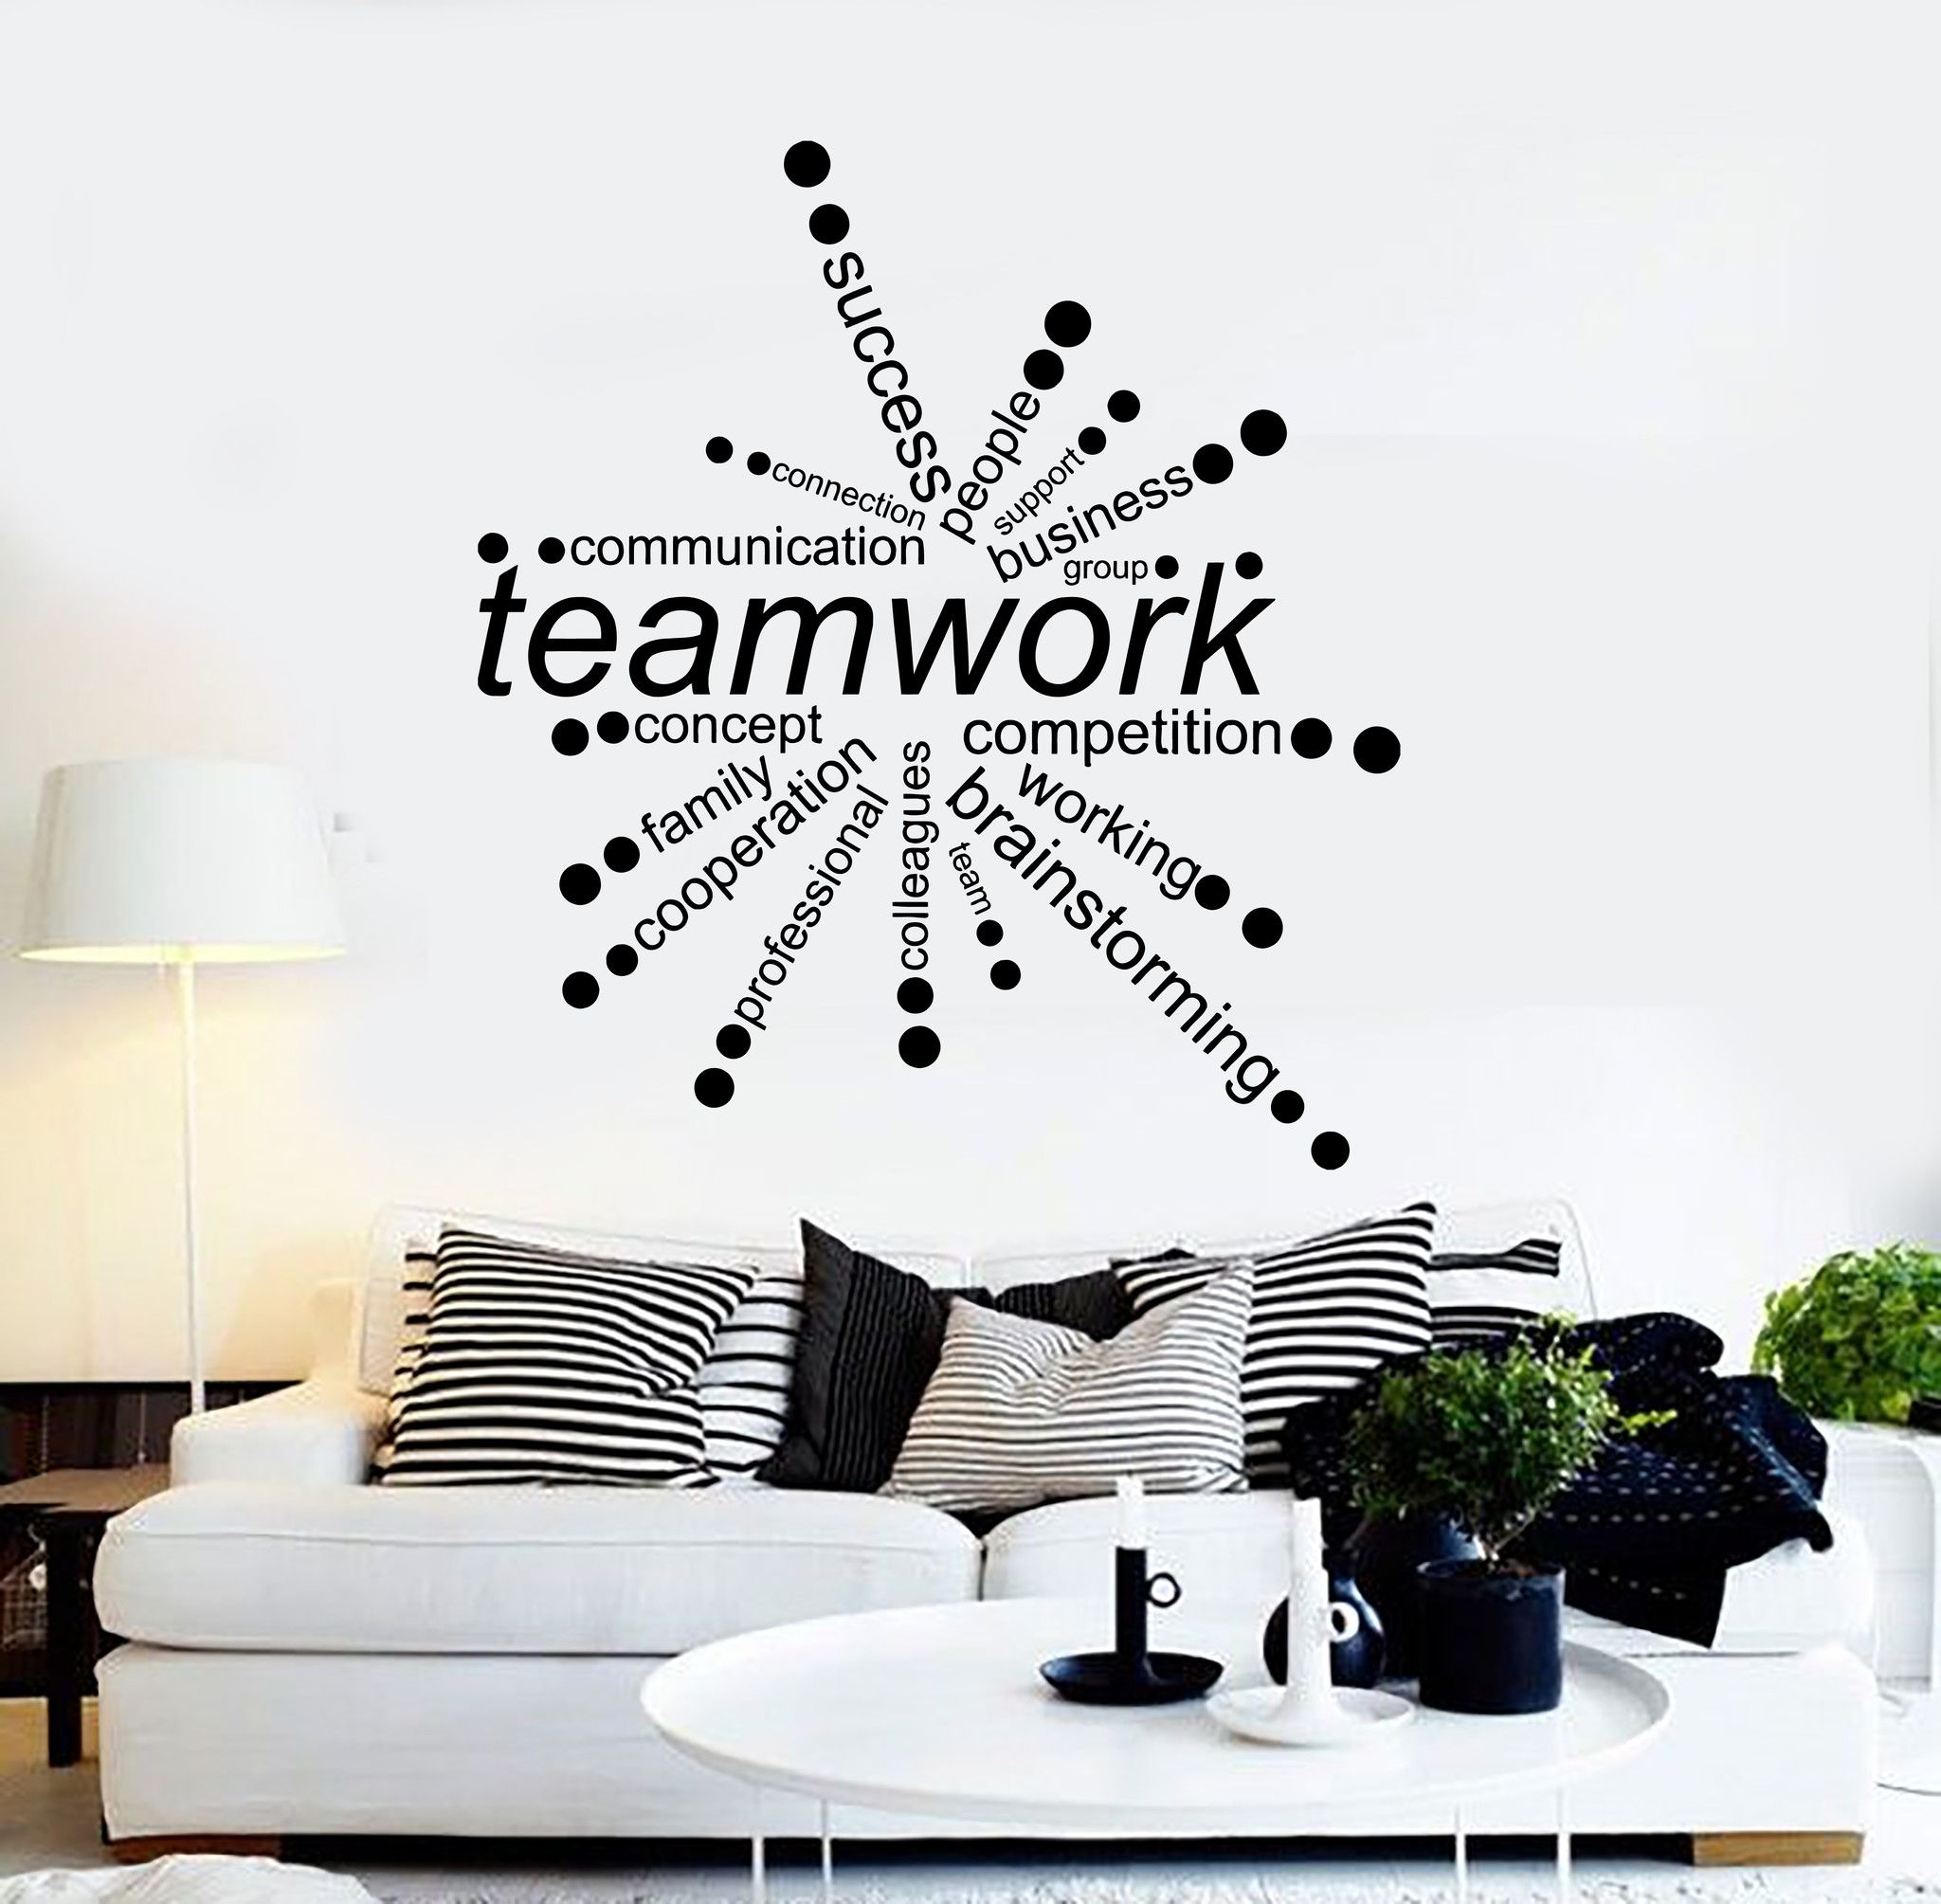 Wall Decorations For Office Luxury Vinyl Wall Decal Teamwork Words With Current Vinyl Wall Accents (View 7 of 15)